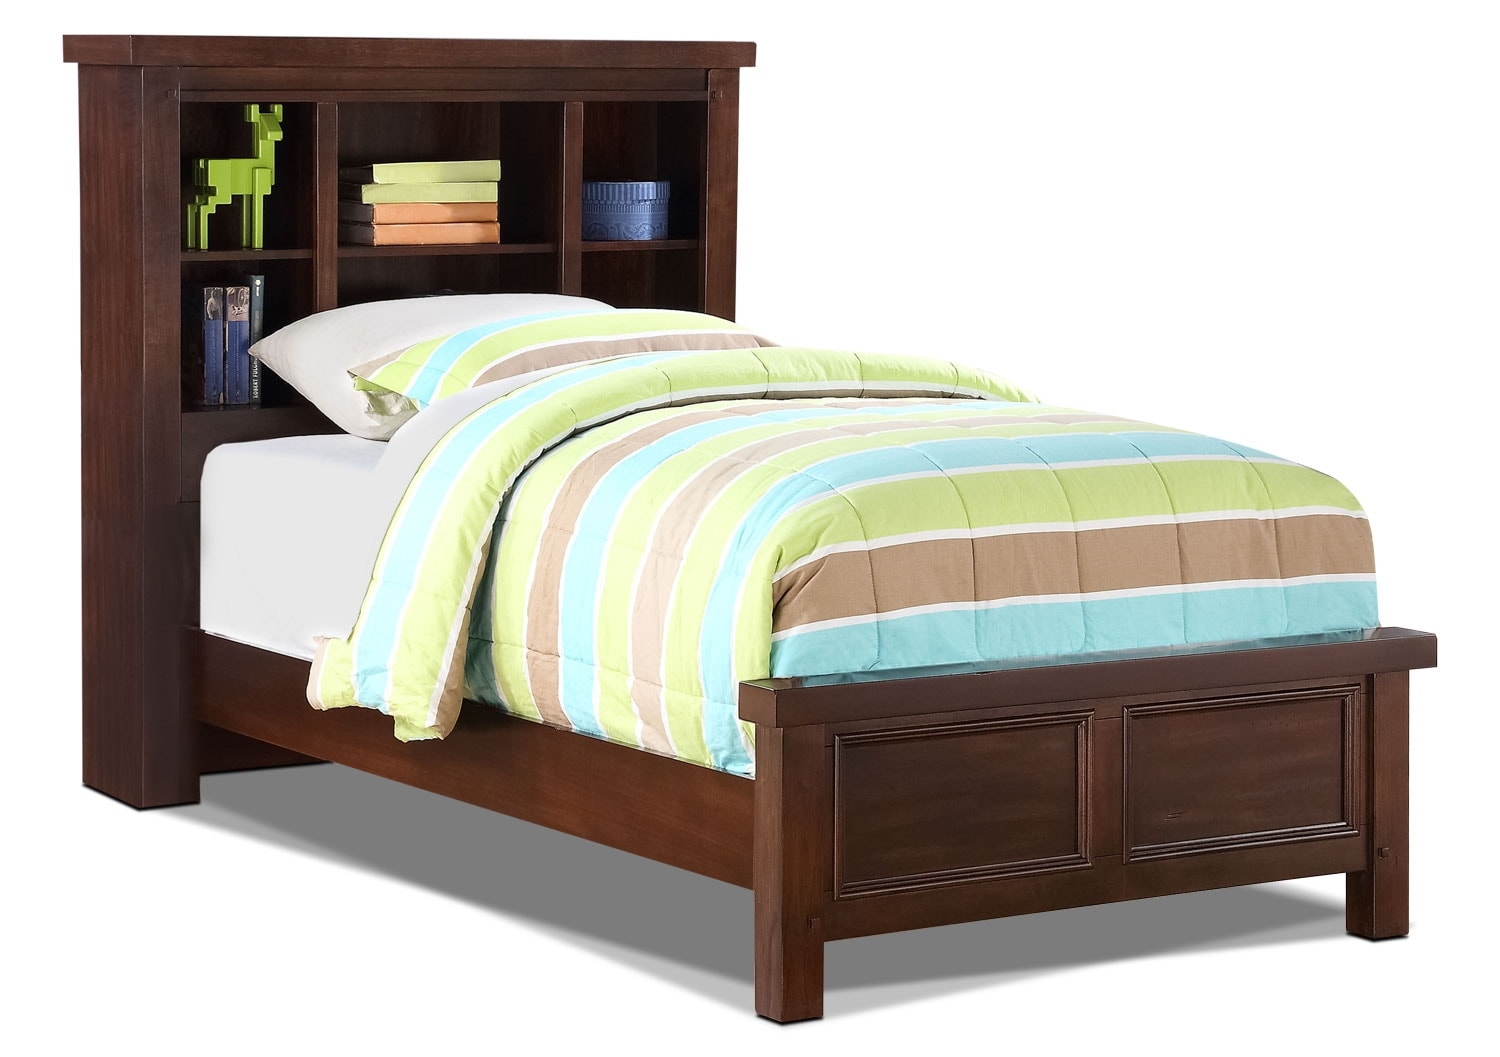 Sonoma bedding for teens